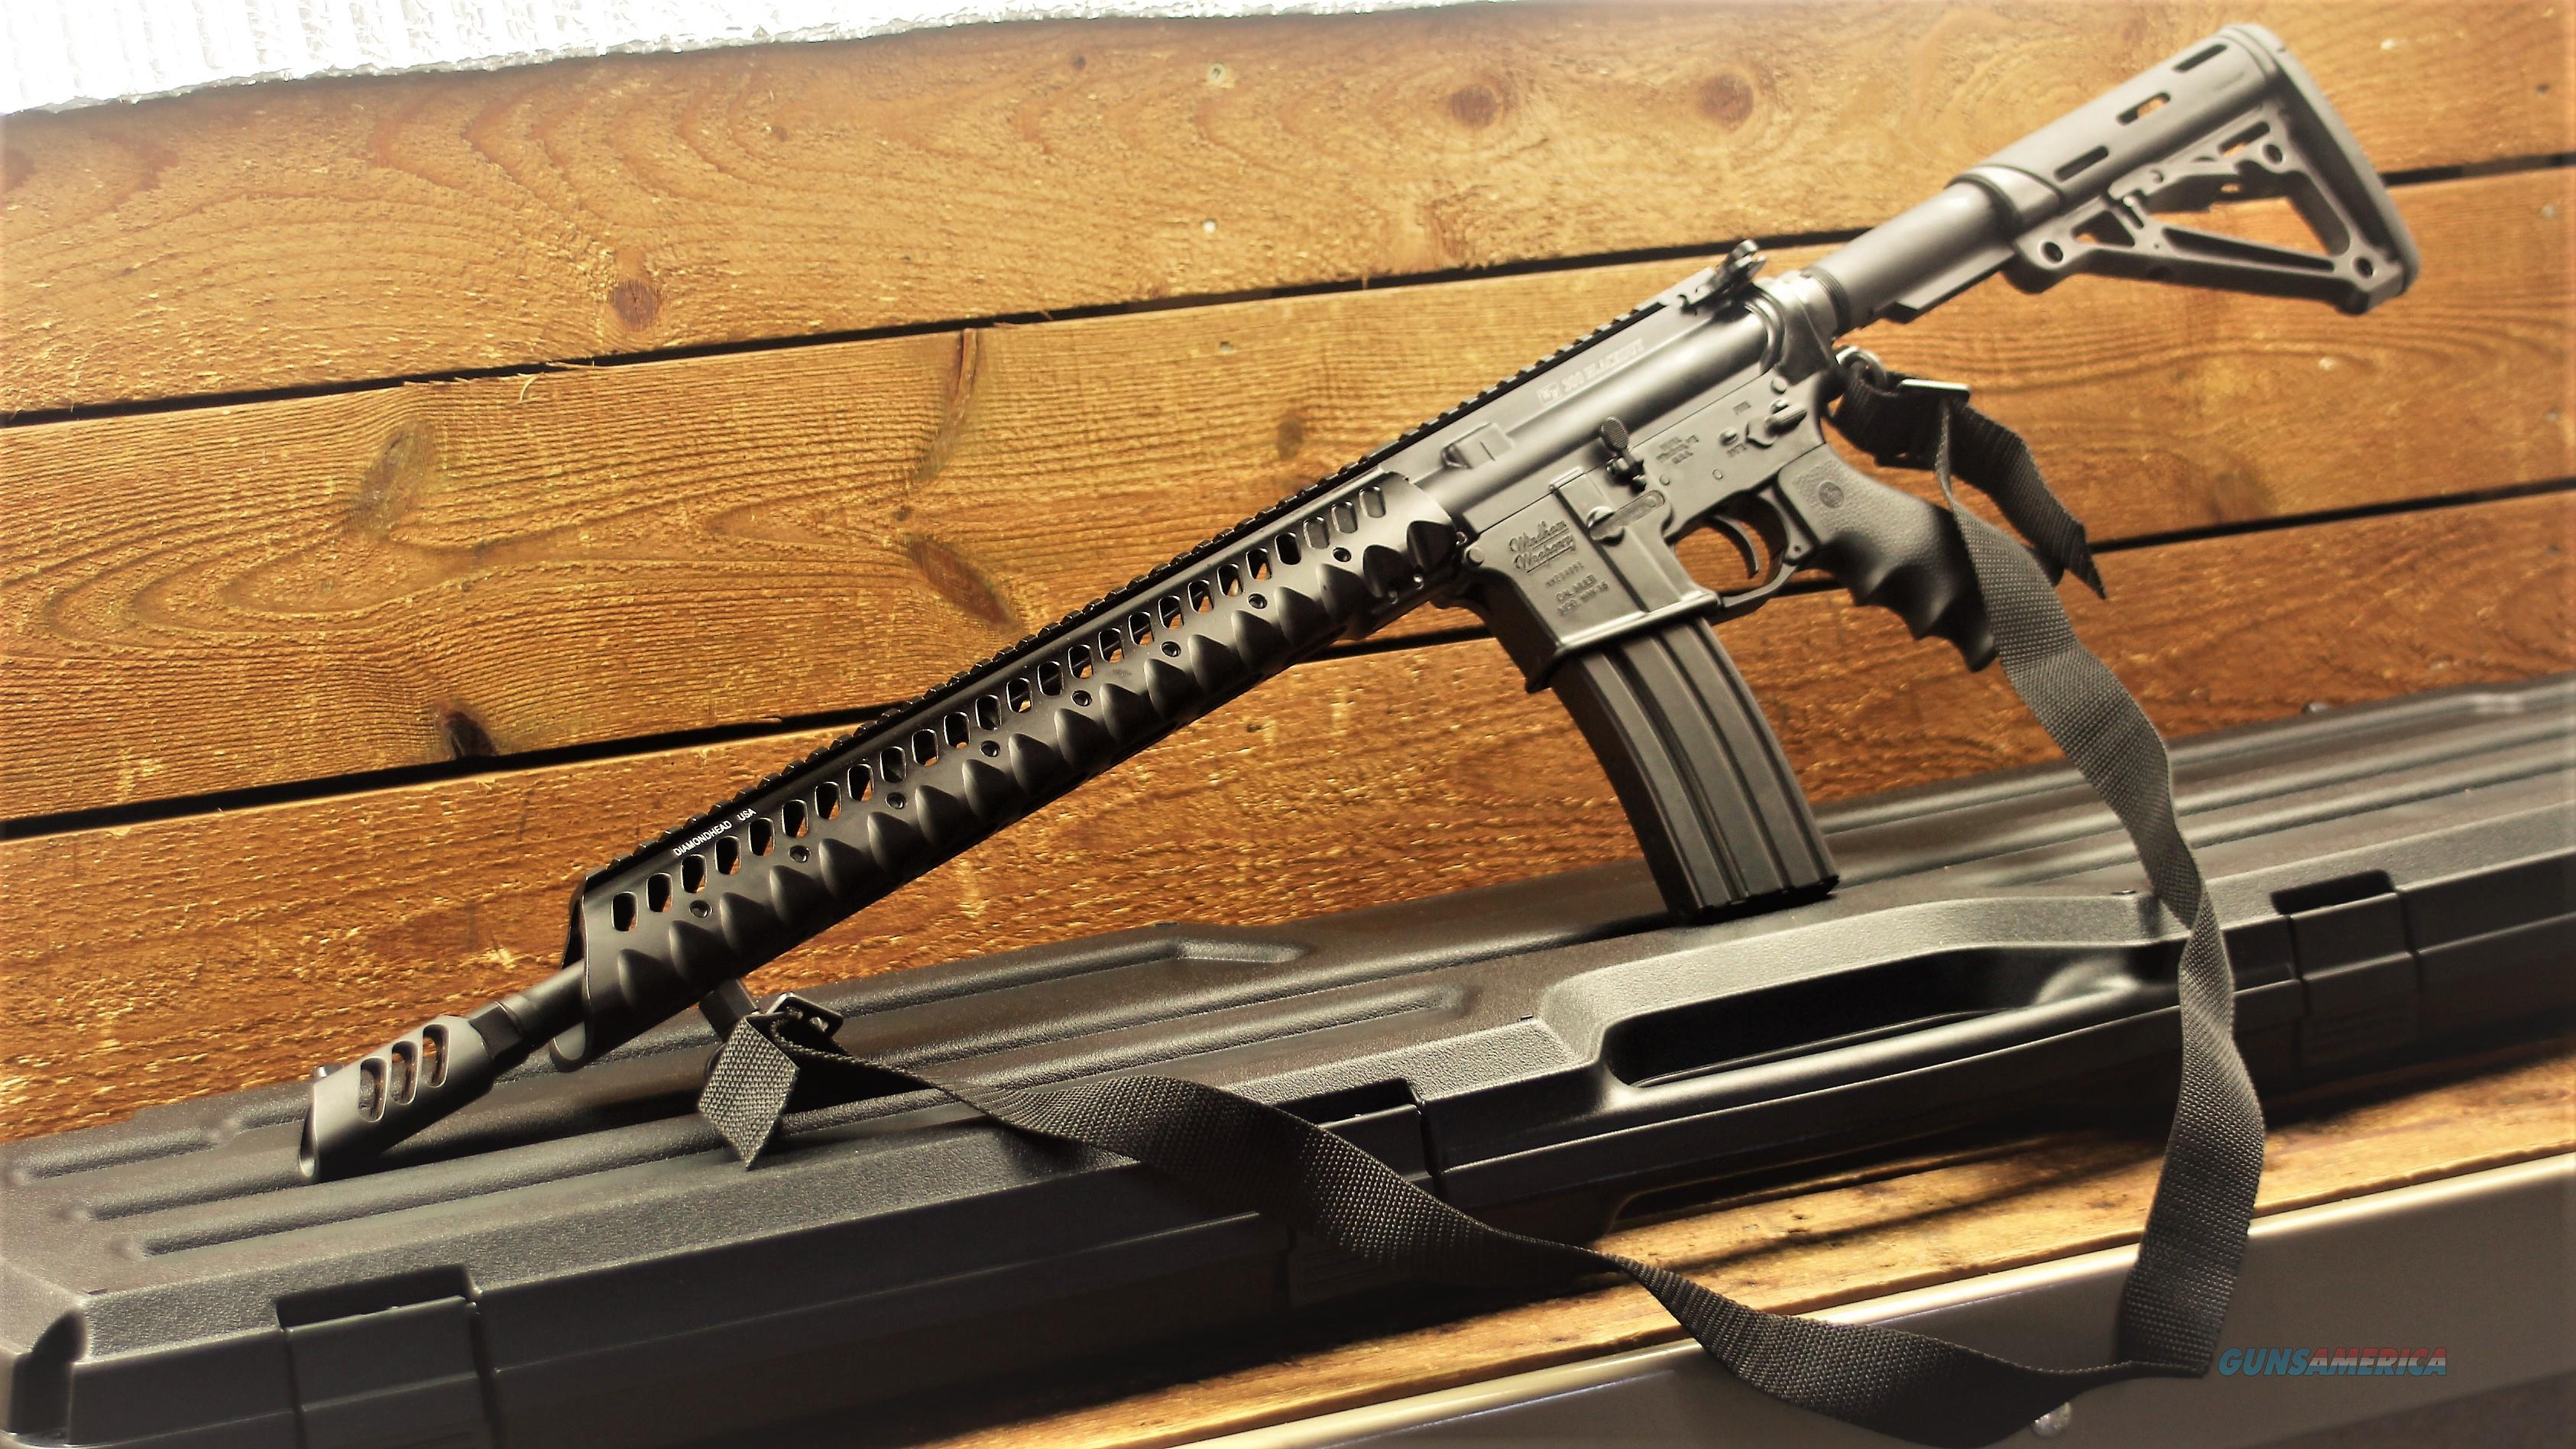 """EASY PAY $120 Windham Weaponry M4 300 Blackout  Ar-15 Hunting Ar15 chrome lined  16"""" BBL  Anodized  with Laser Engraving 1-7 TWIST  Made in the USA built for precision Pistol Grip Magpul 6 Position Buttstock collapsible WWR16SFSDHHT300  Guns > Rifles > Windham Weaponry Rifles"""